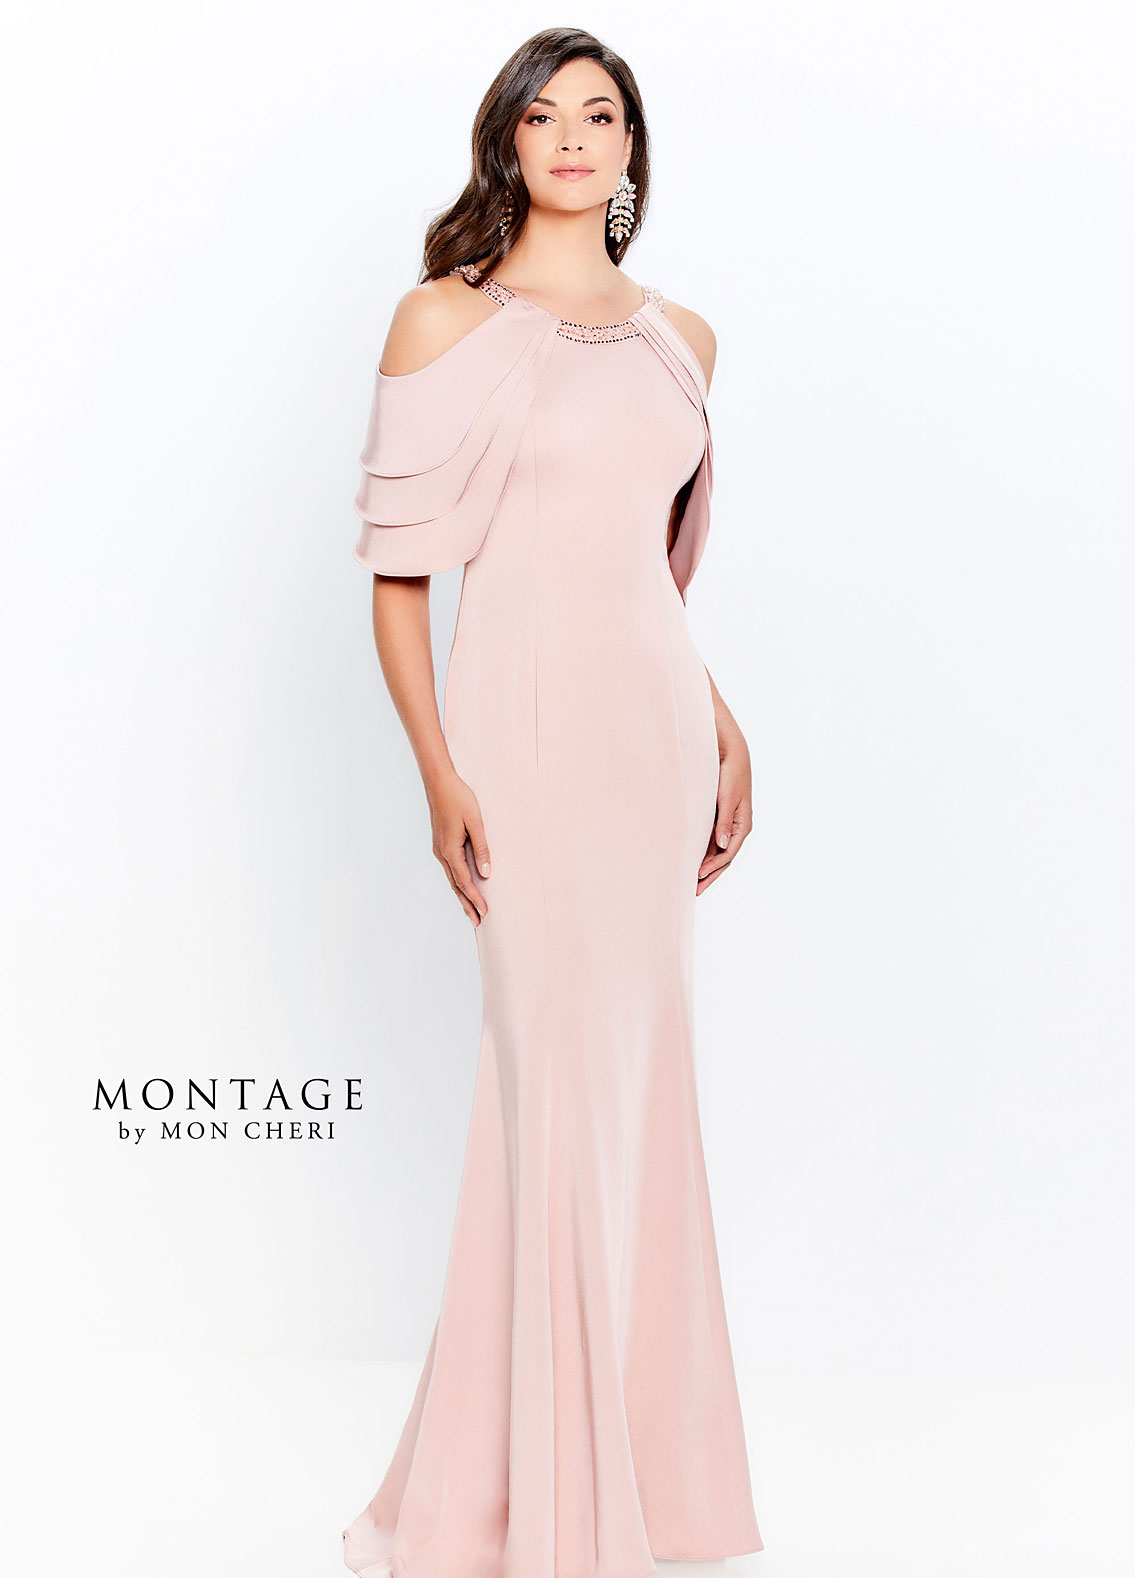 Montage by Mon Cheri Dress